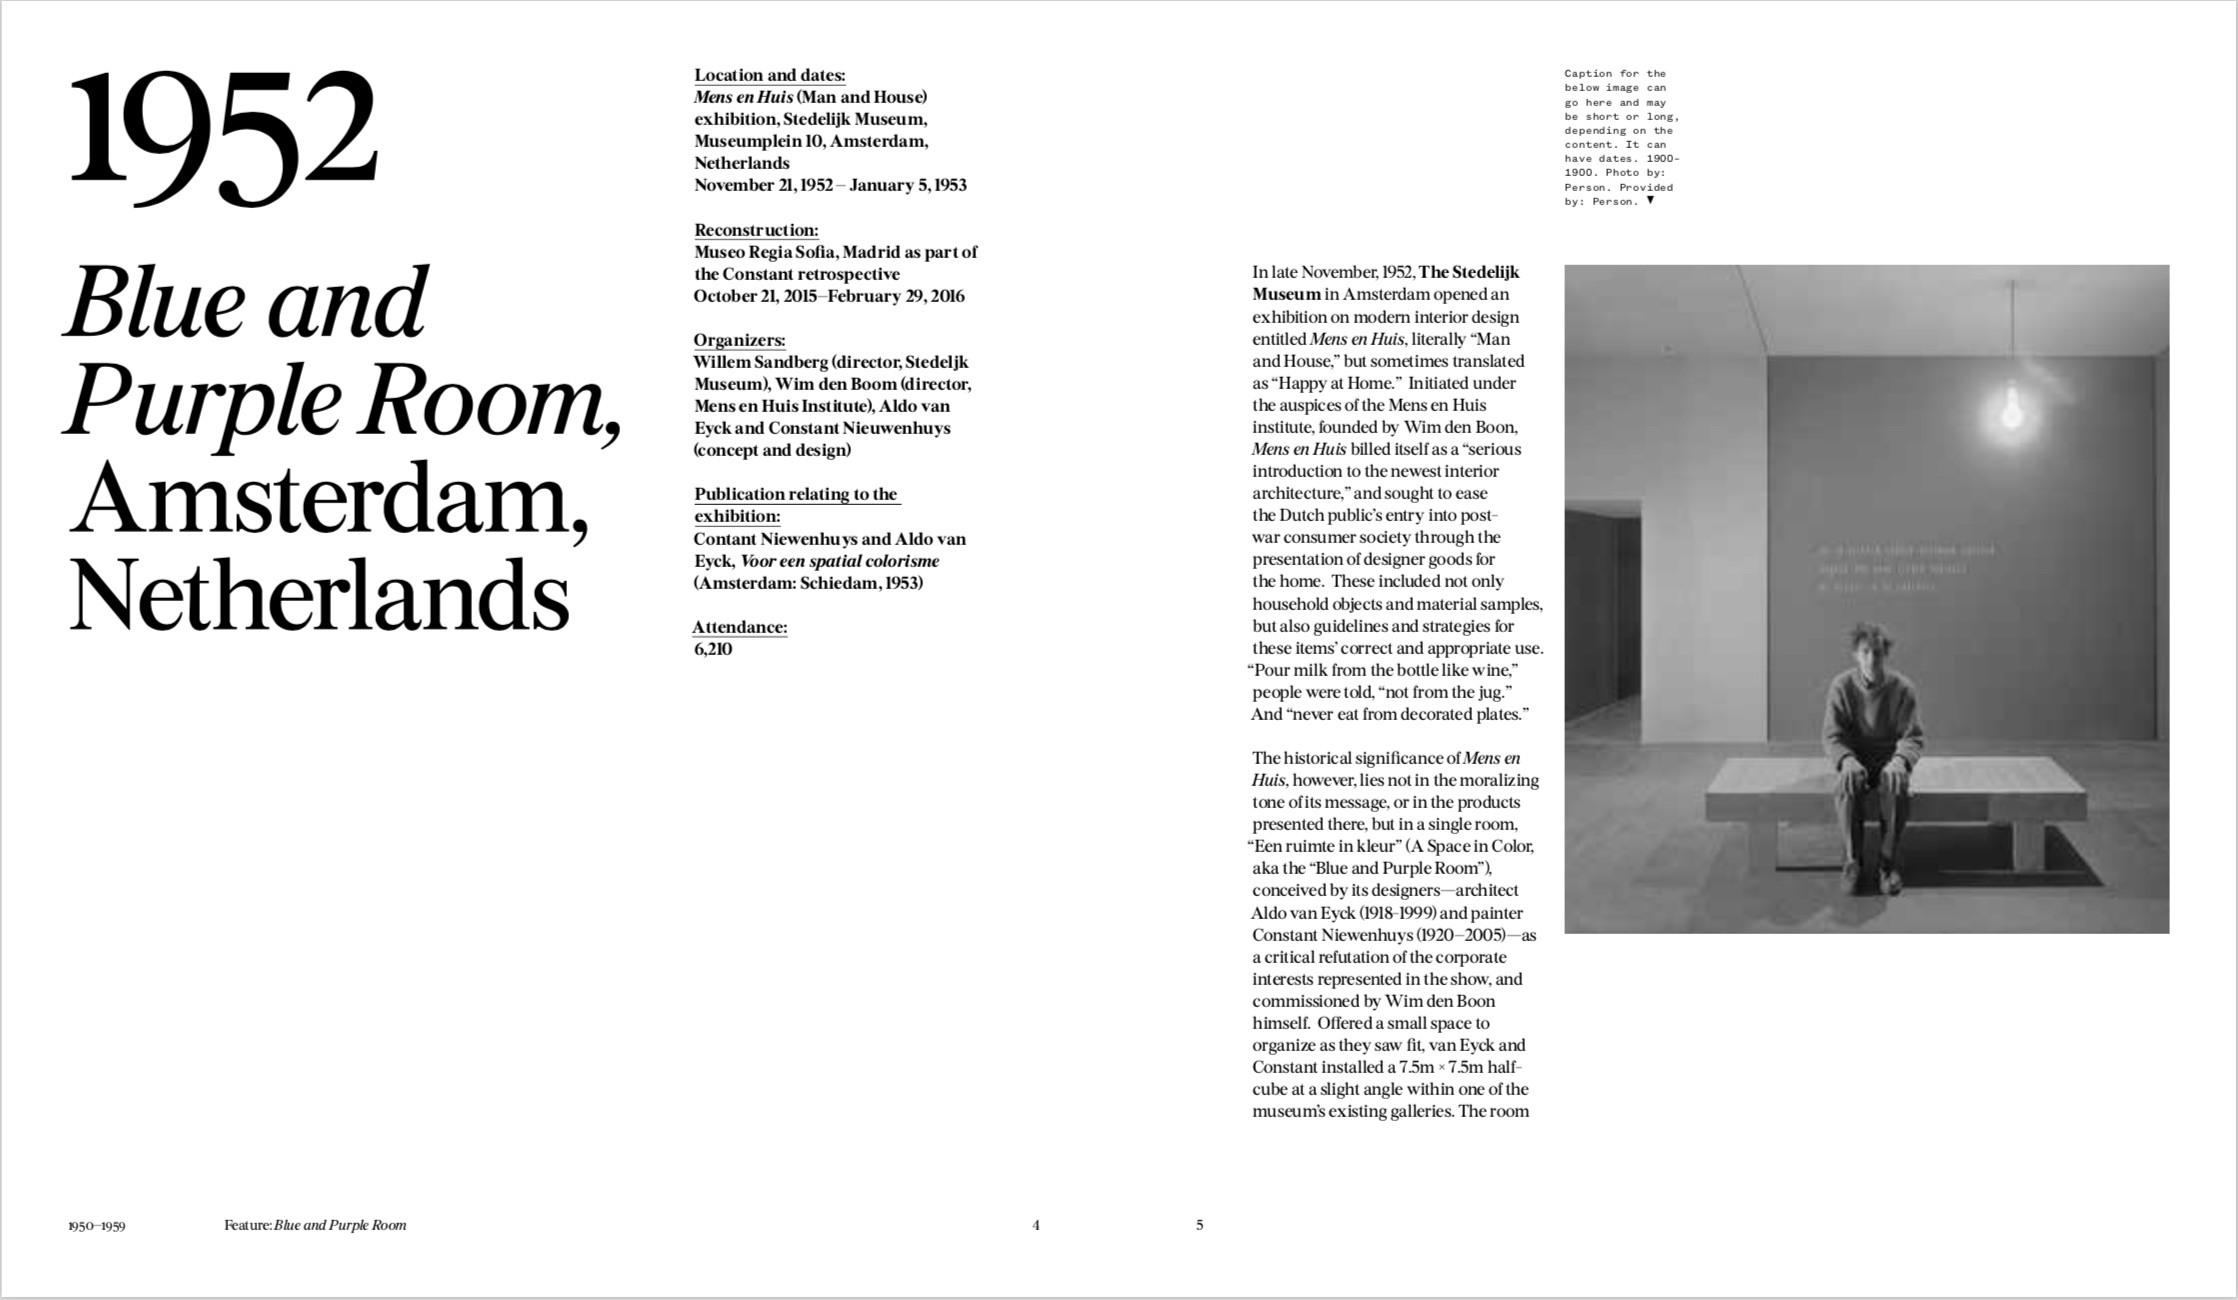 By Eeva-Liisa Pelkonen from Exhibit A: Exhibitions That Transformed Architecture, 1948-2000 copyright Phaidon 2018